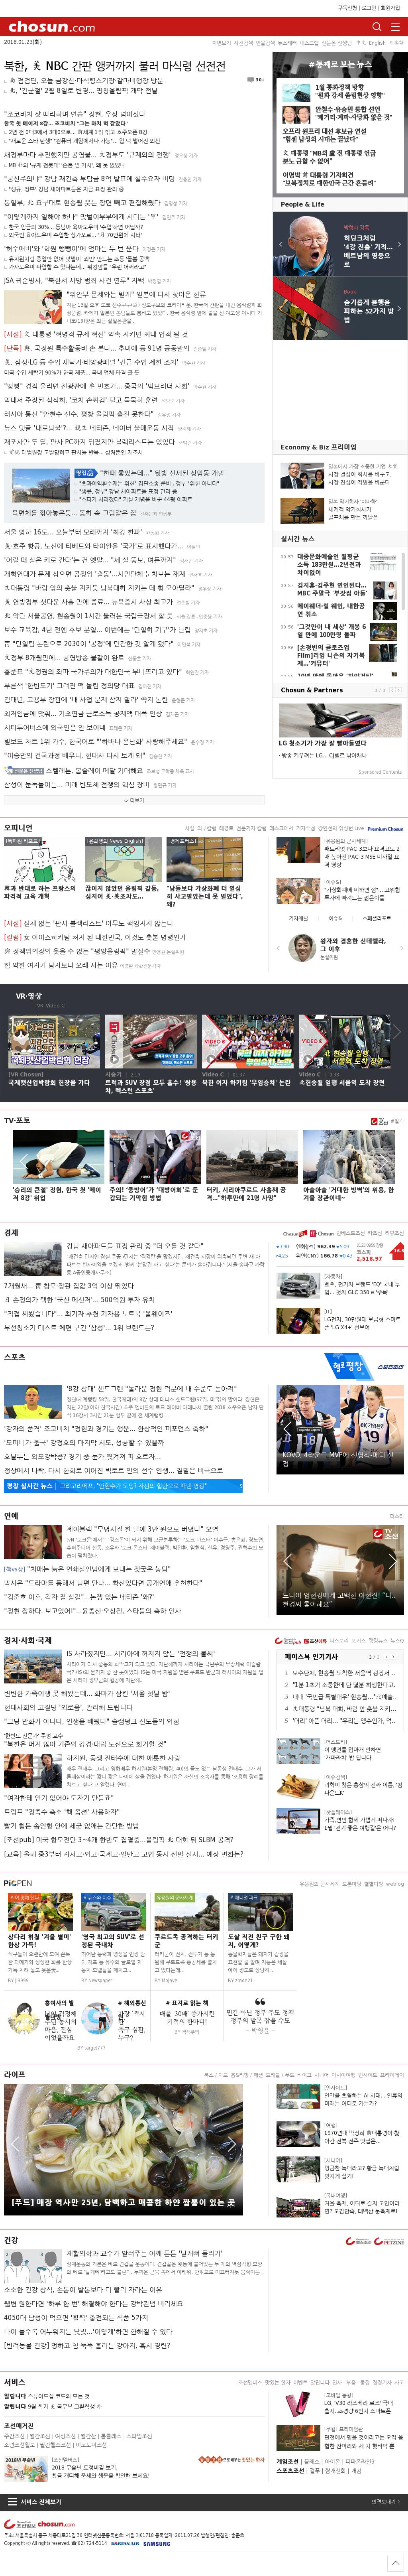 chosun.com at Tuesday Jan. 23, 2018, 1:01 a.m. UTC